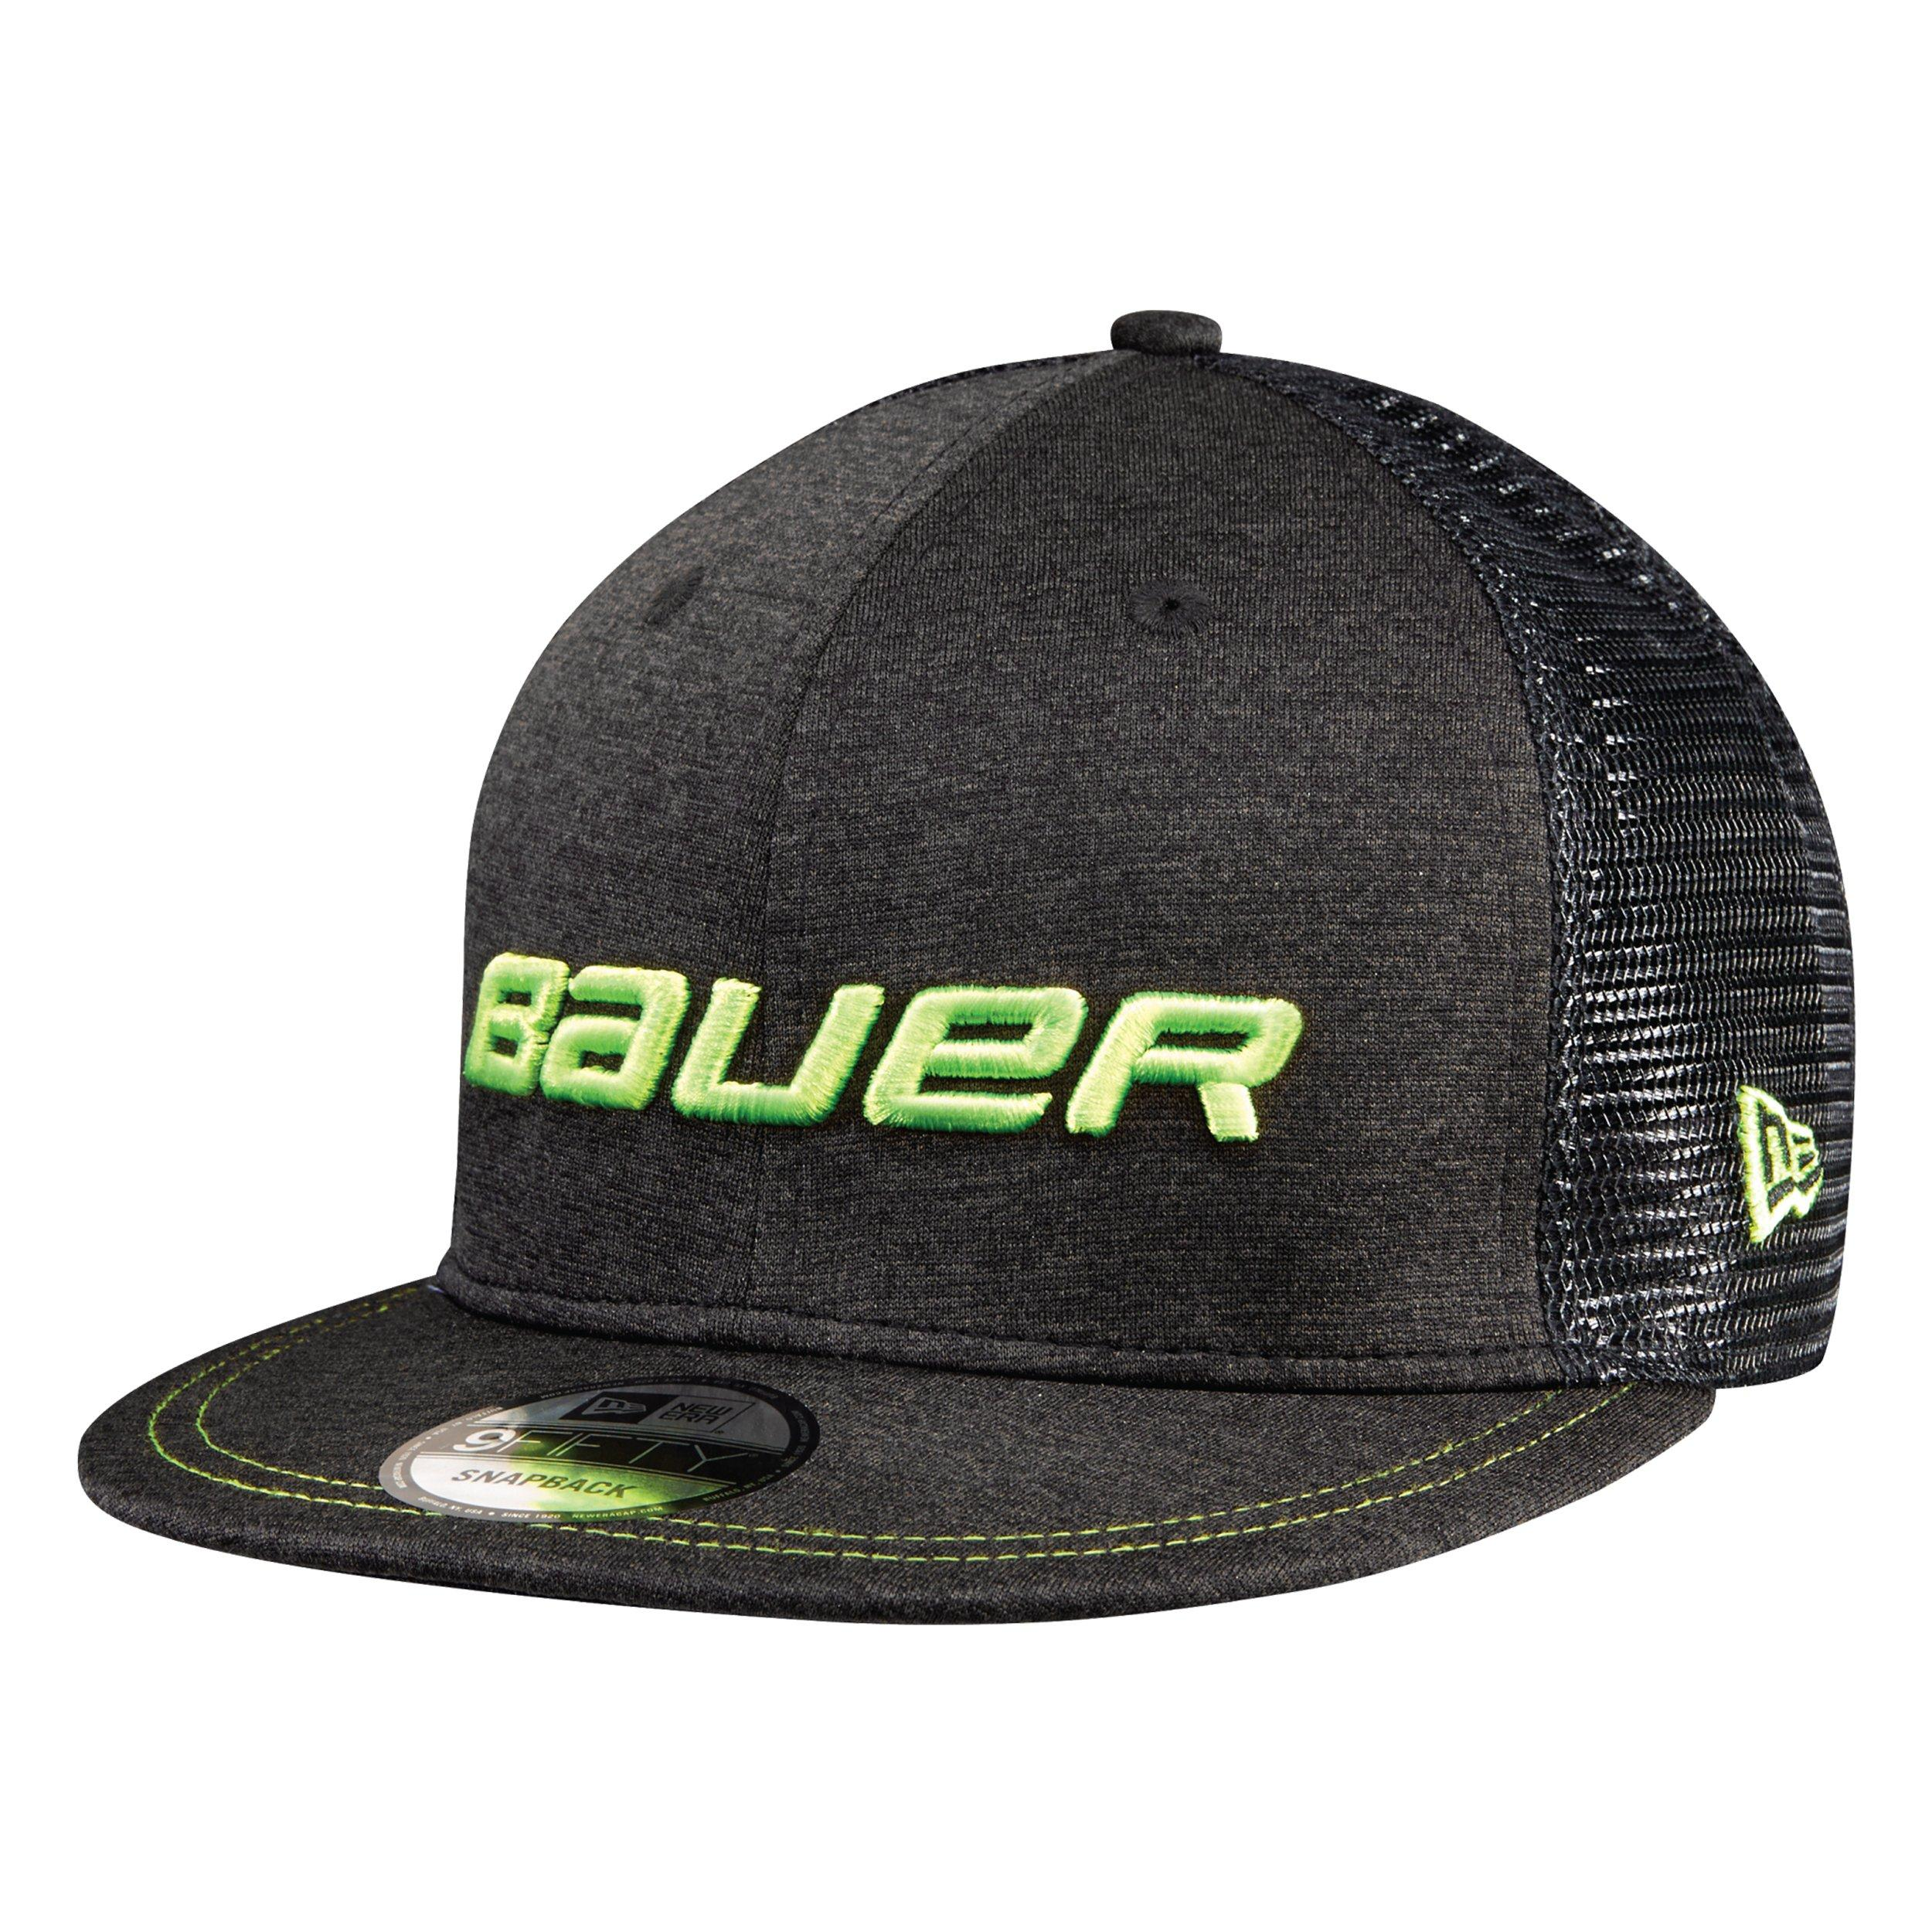 BAUER   New Era® 9FIFTY® Color Pop Adjustable Cap Senior db96d4a5c740